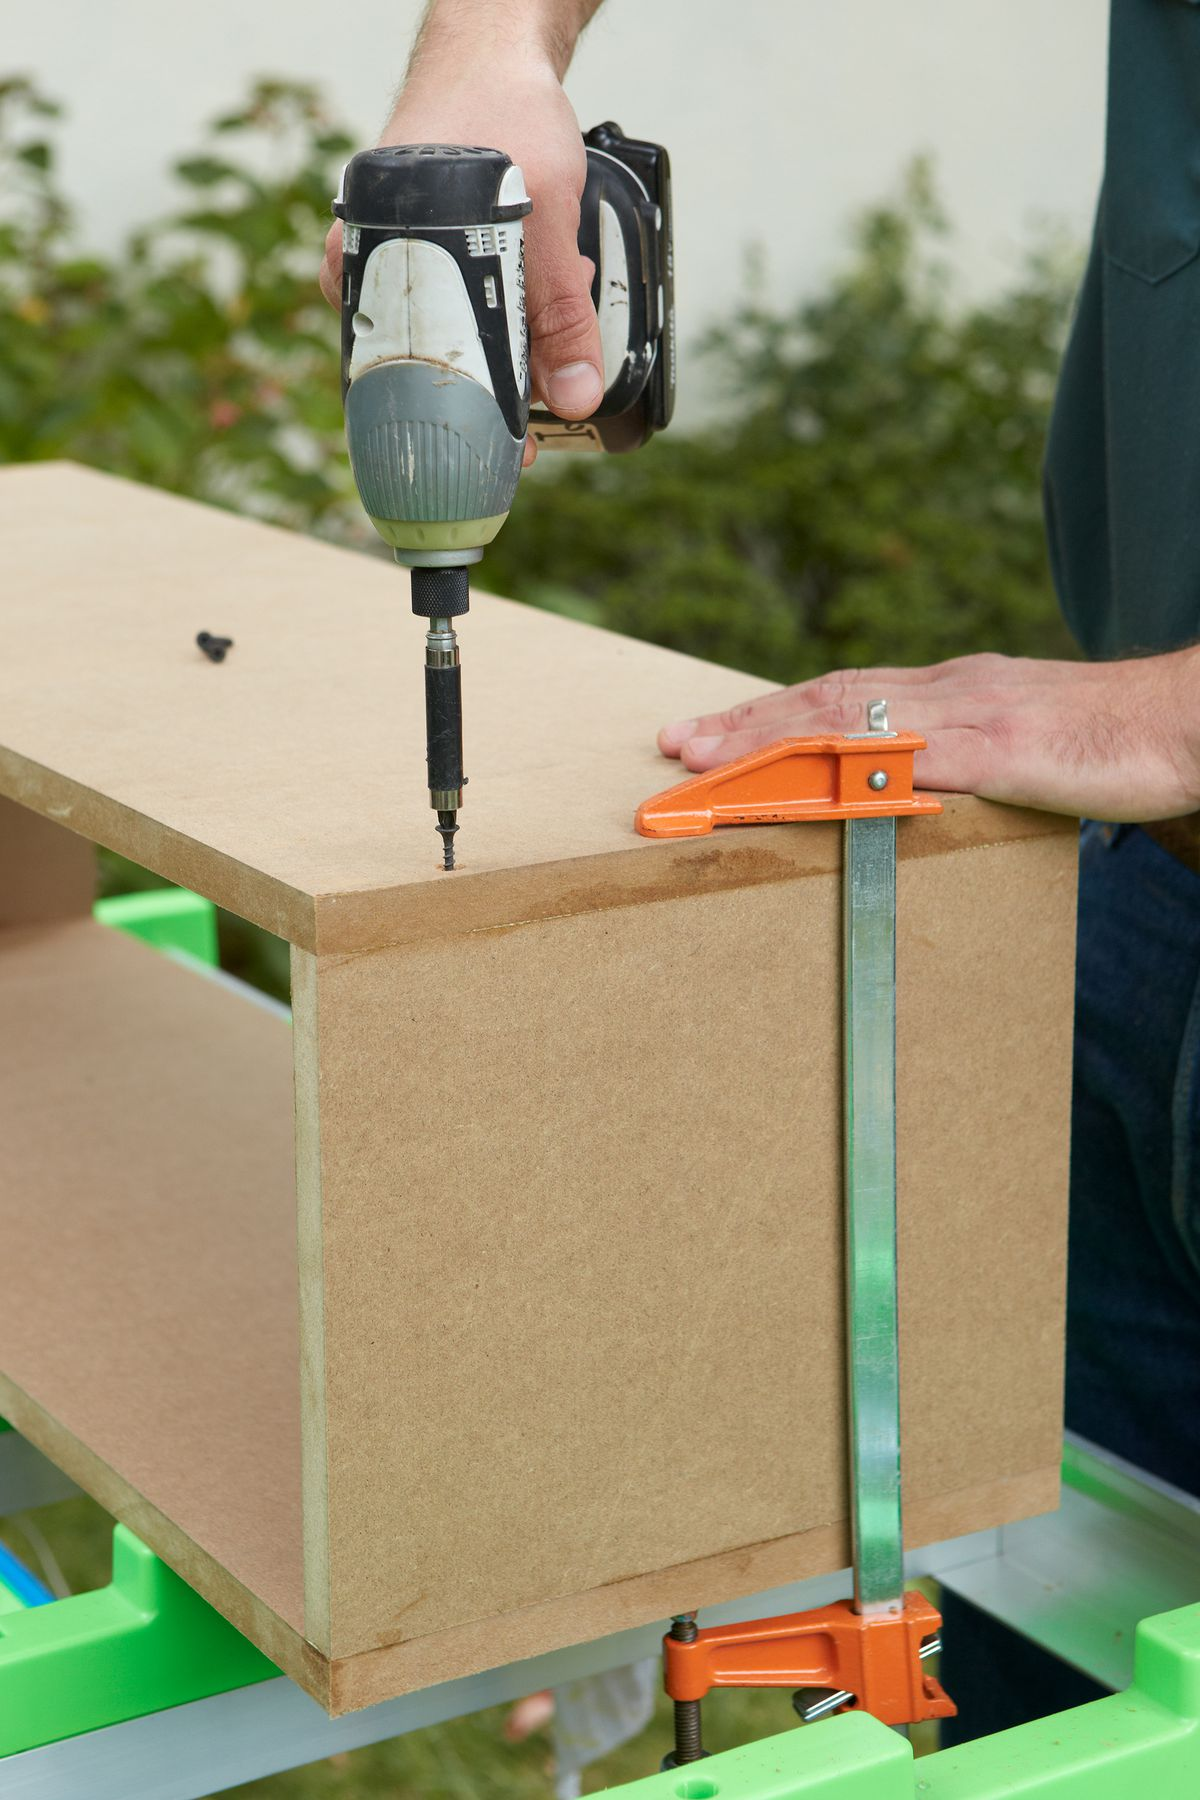 Man Countersinking Pilot Holes In Wood To Make Room Divider